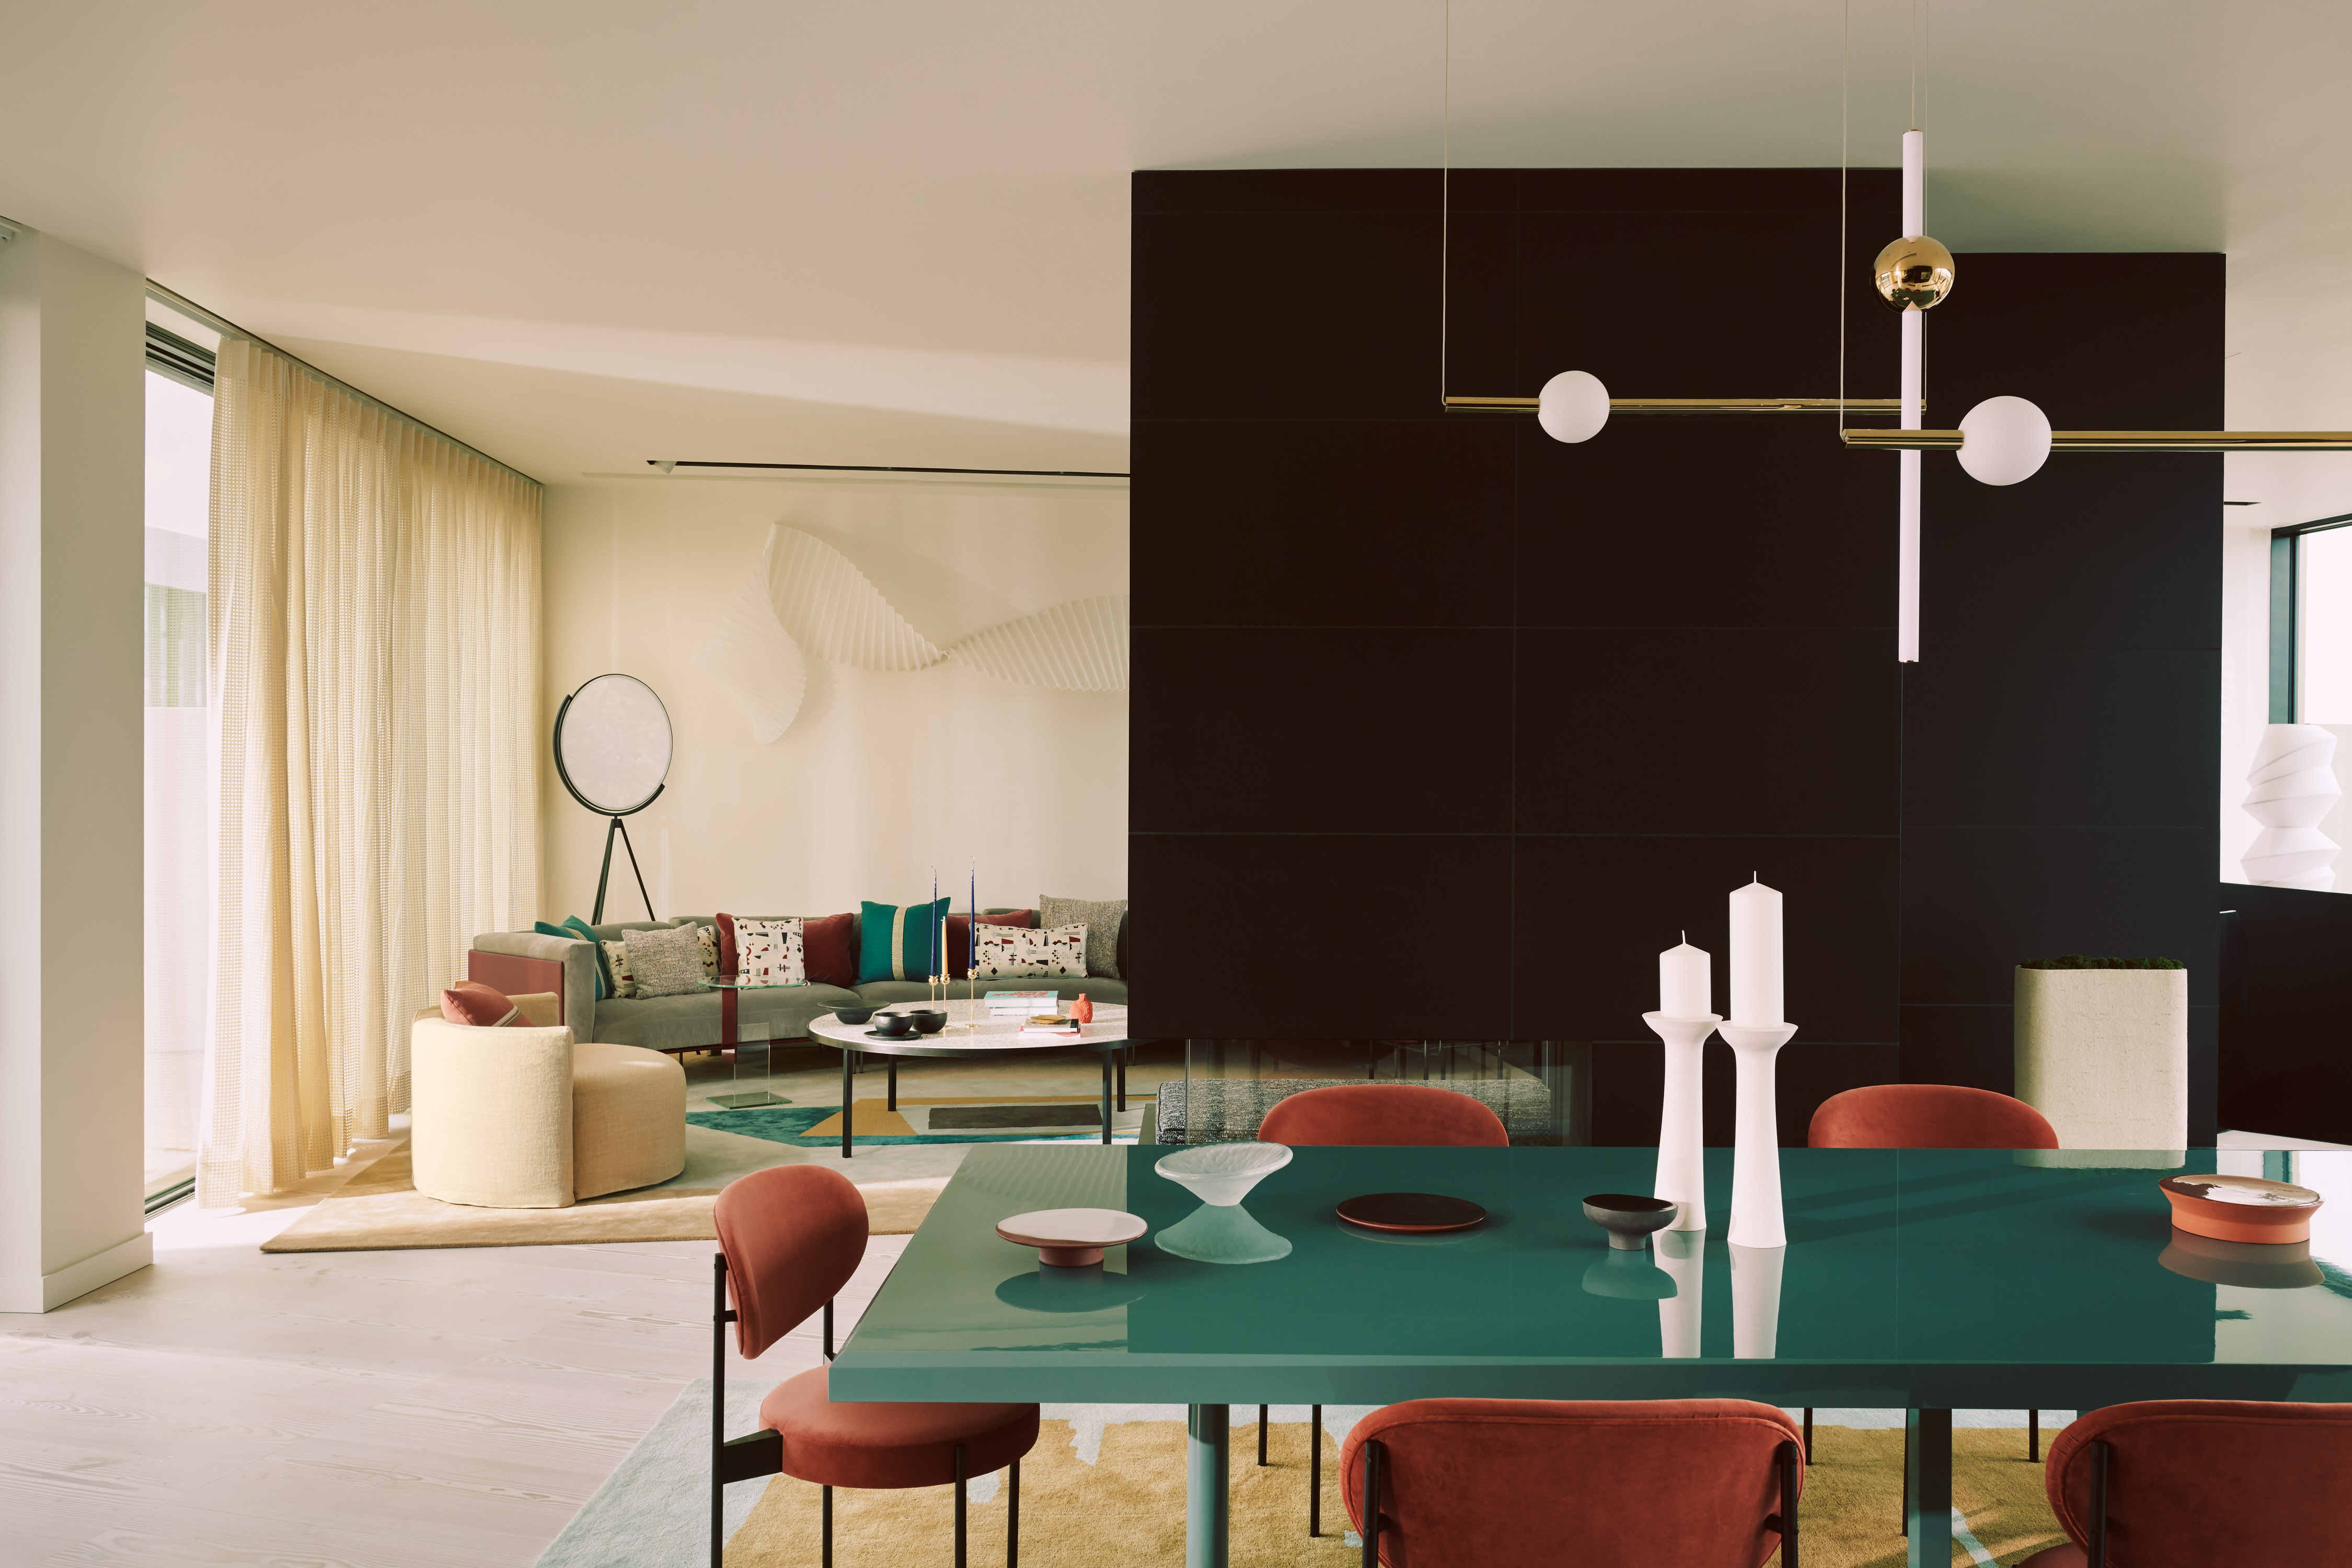 Apartment interior with colorful furniture like a teal dining table with rust colored chairs.